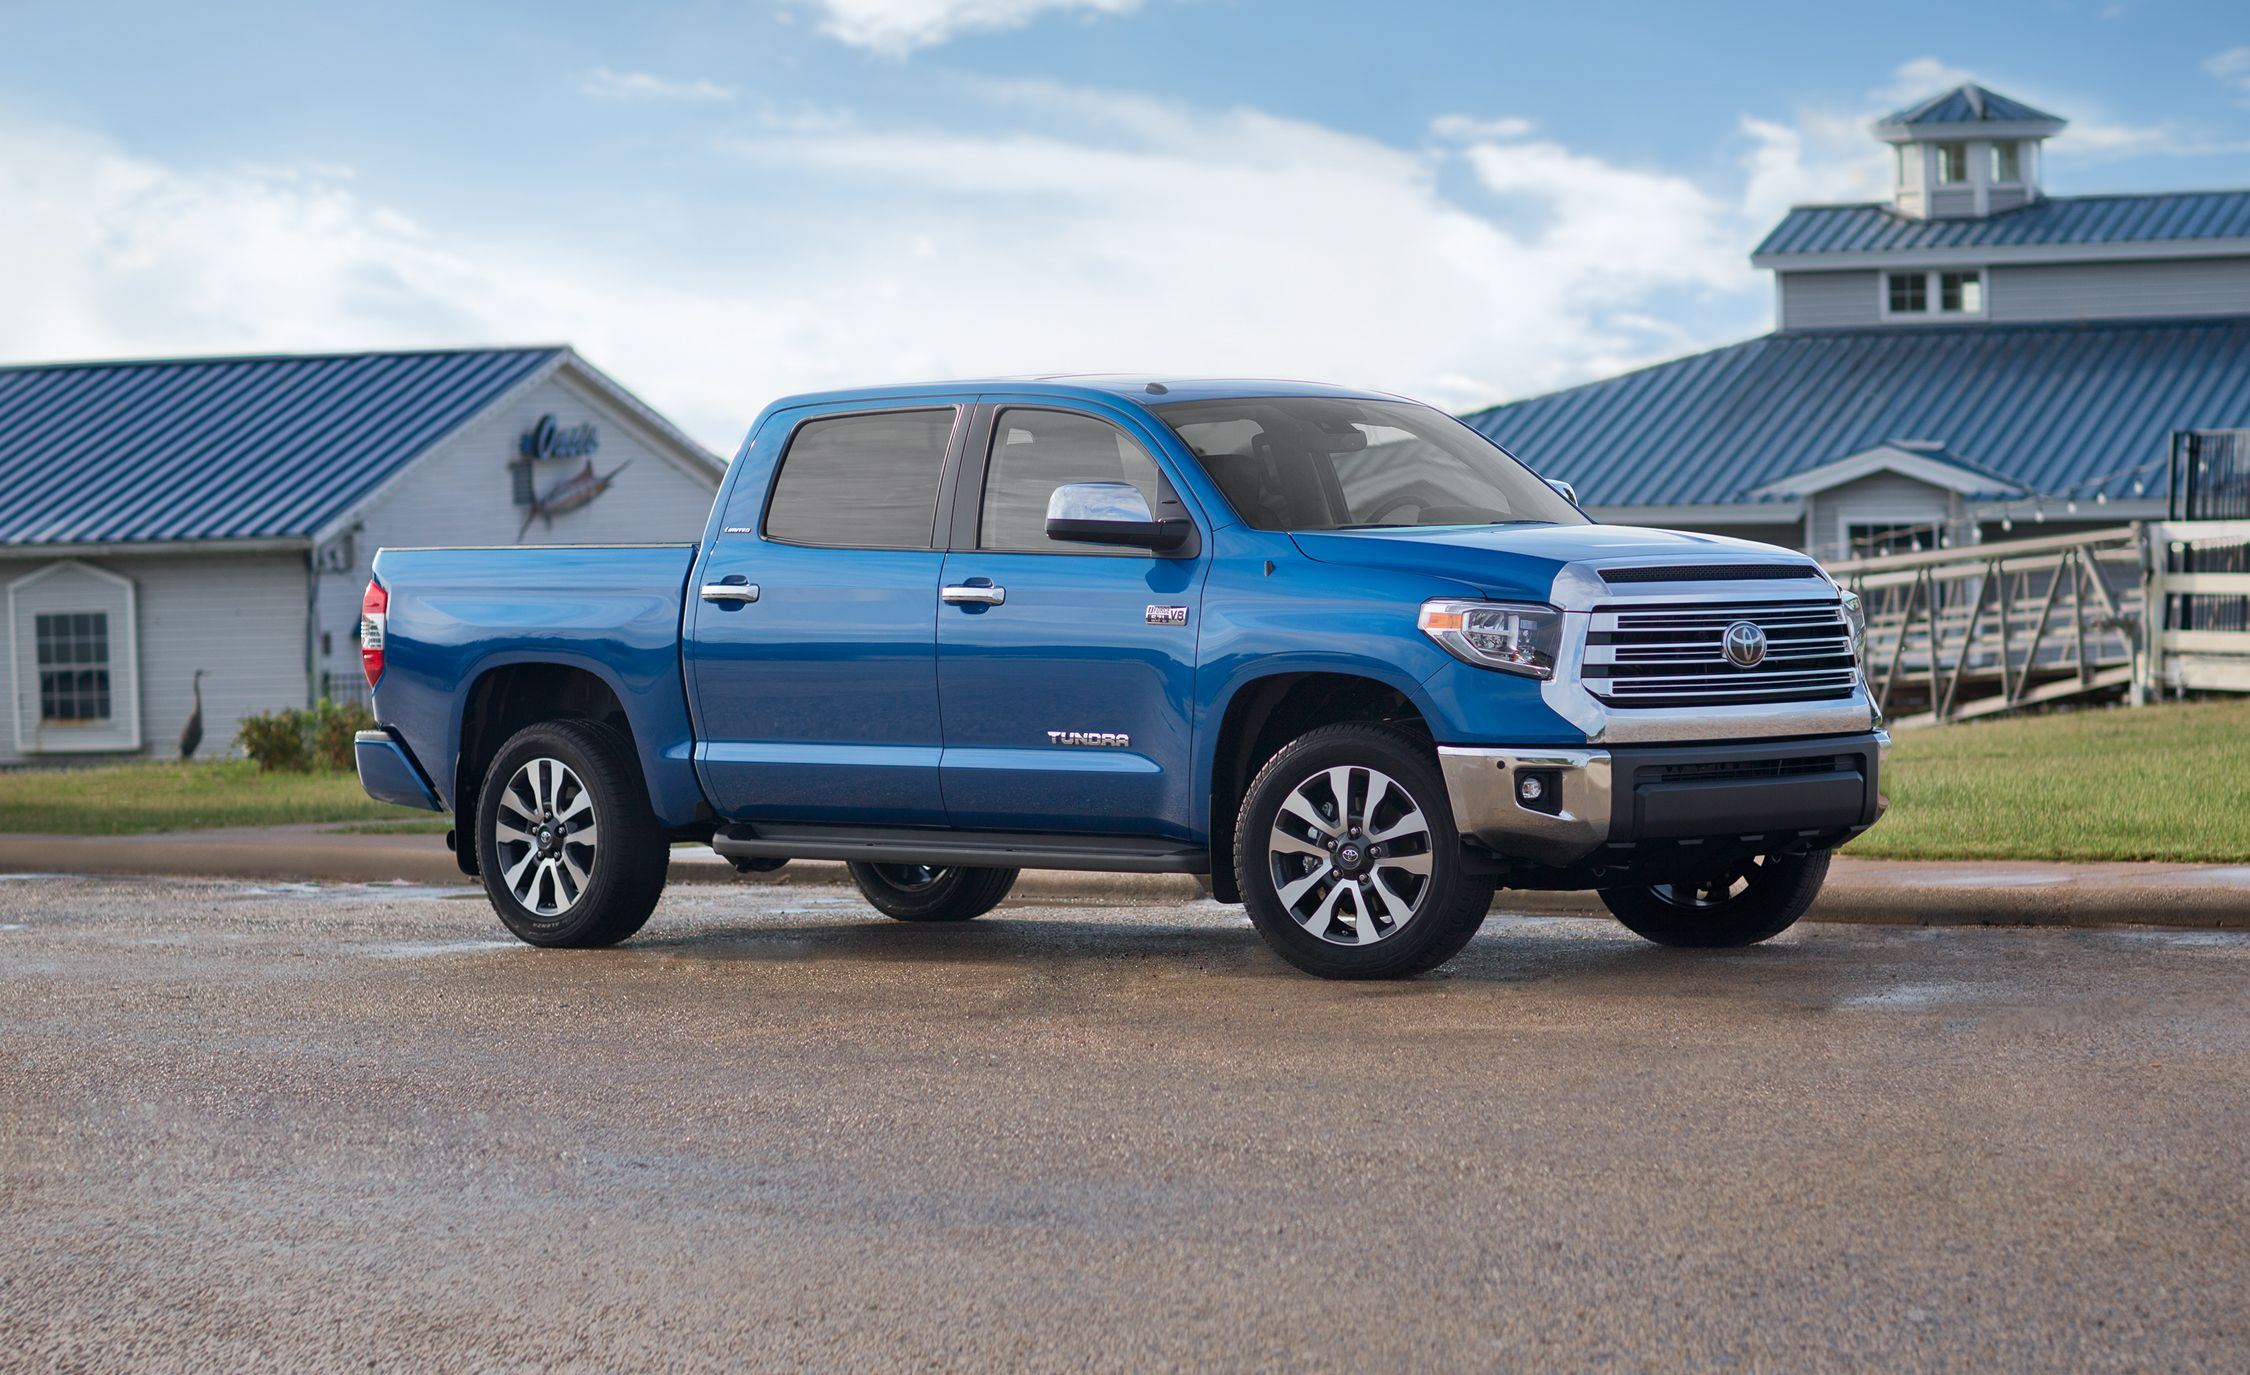 Toyota Tundra Reviews | Toyota Tundra Price, Photos, And Specs | Car And  Driver